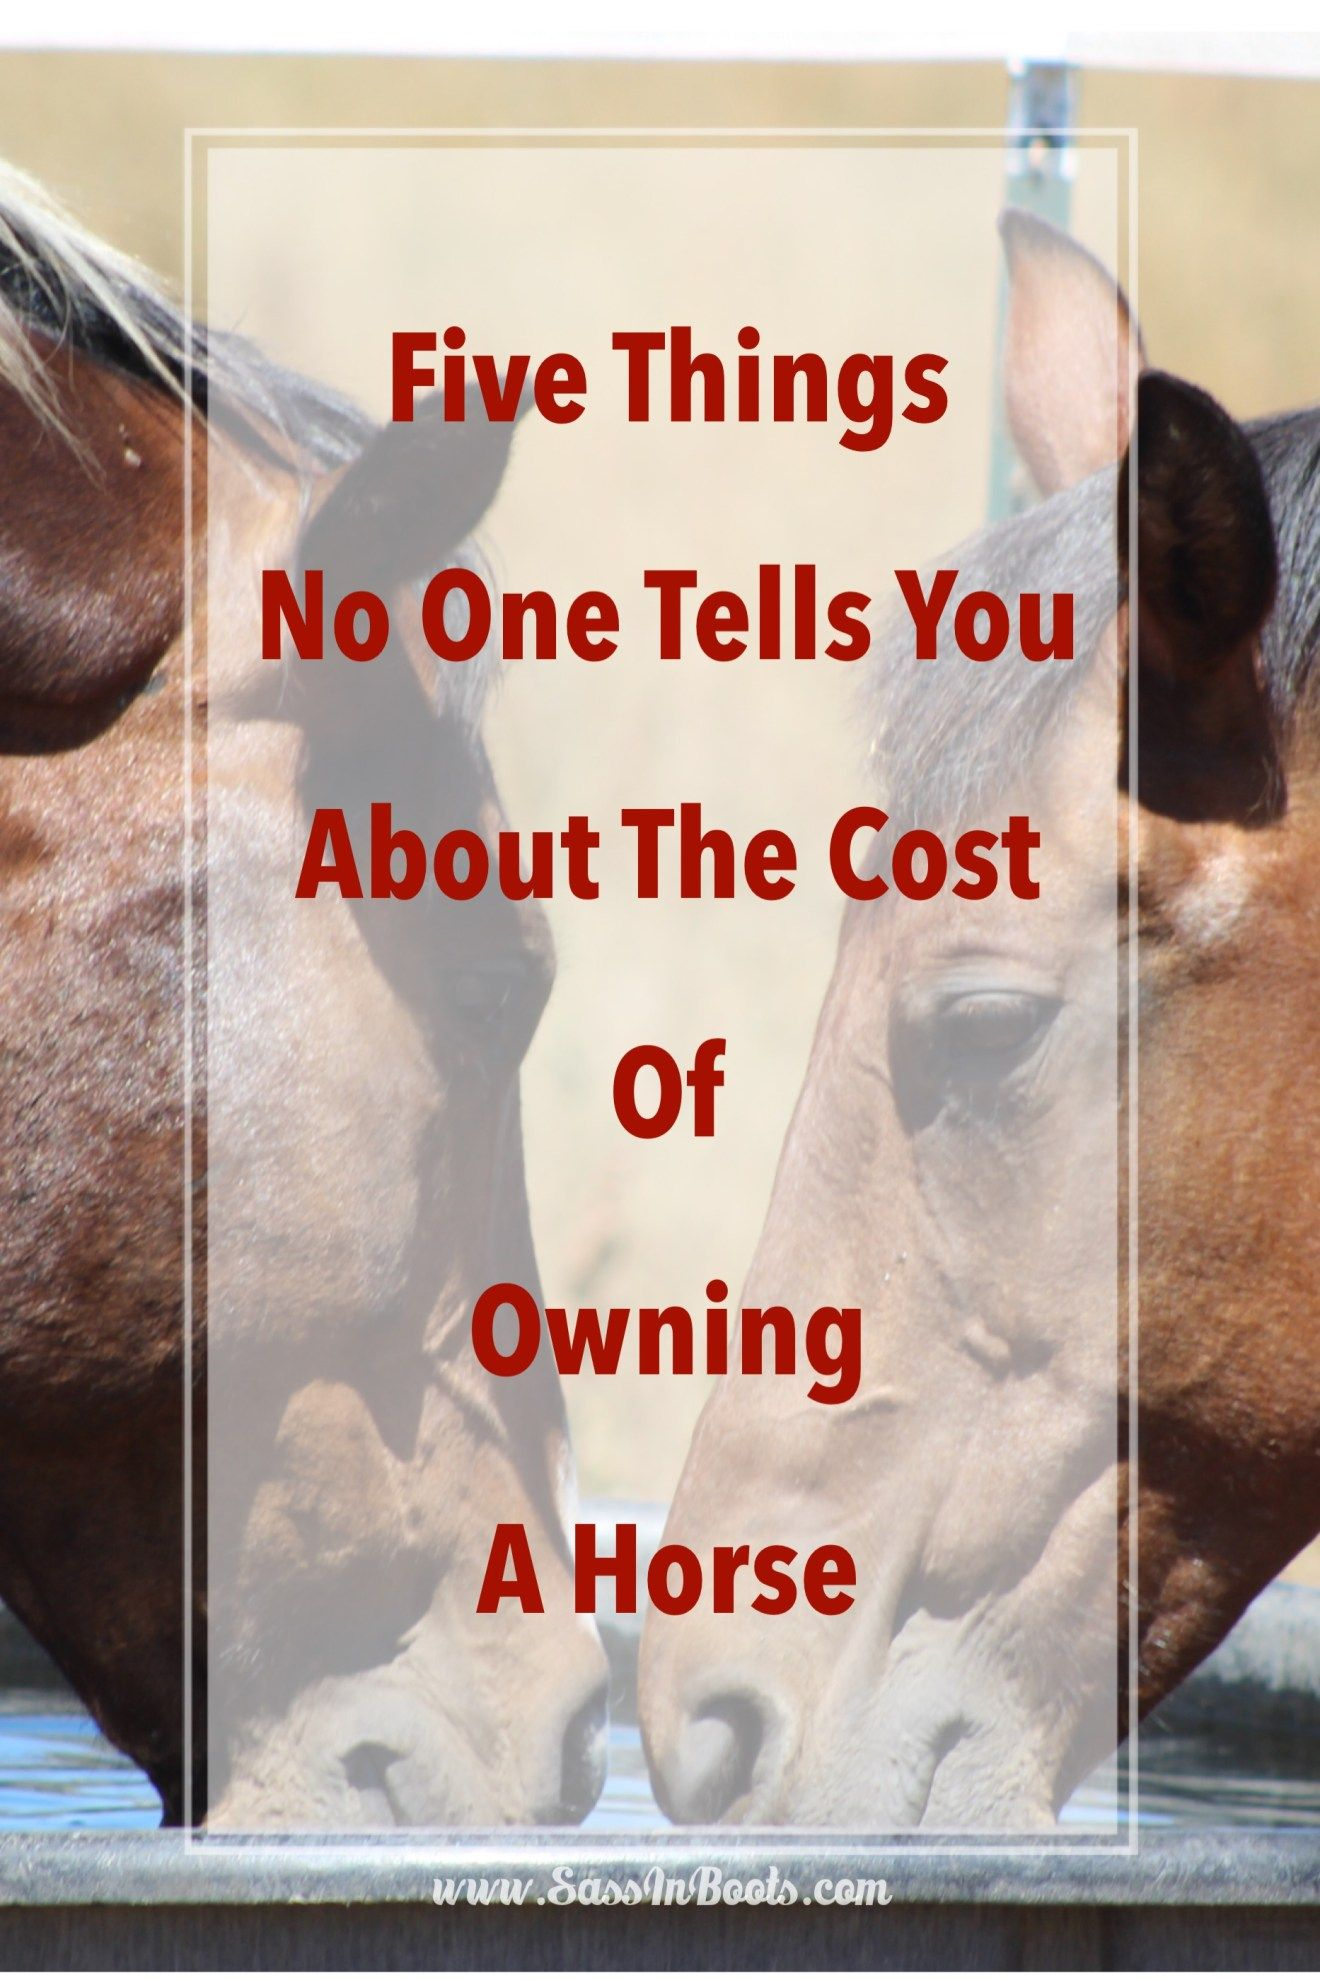 Five Things No One Tells You About The Cost Of Owning A